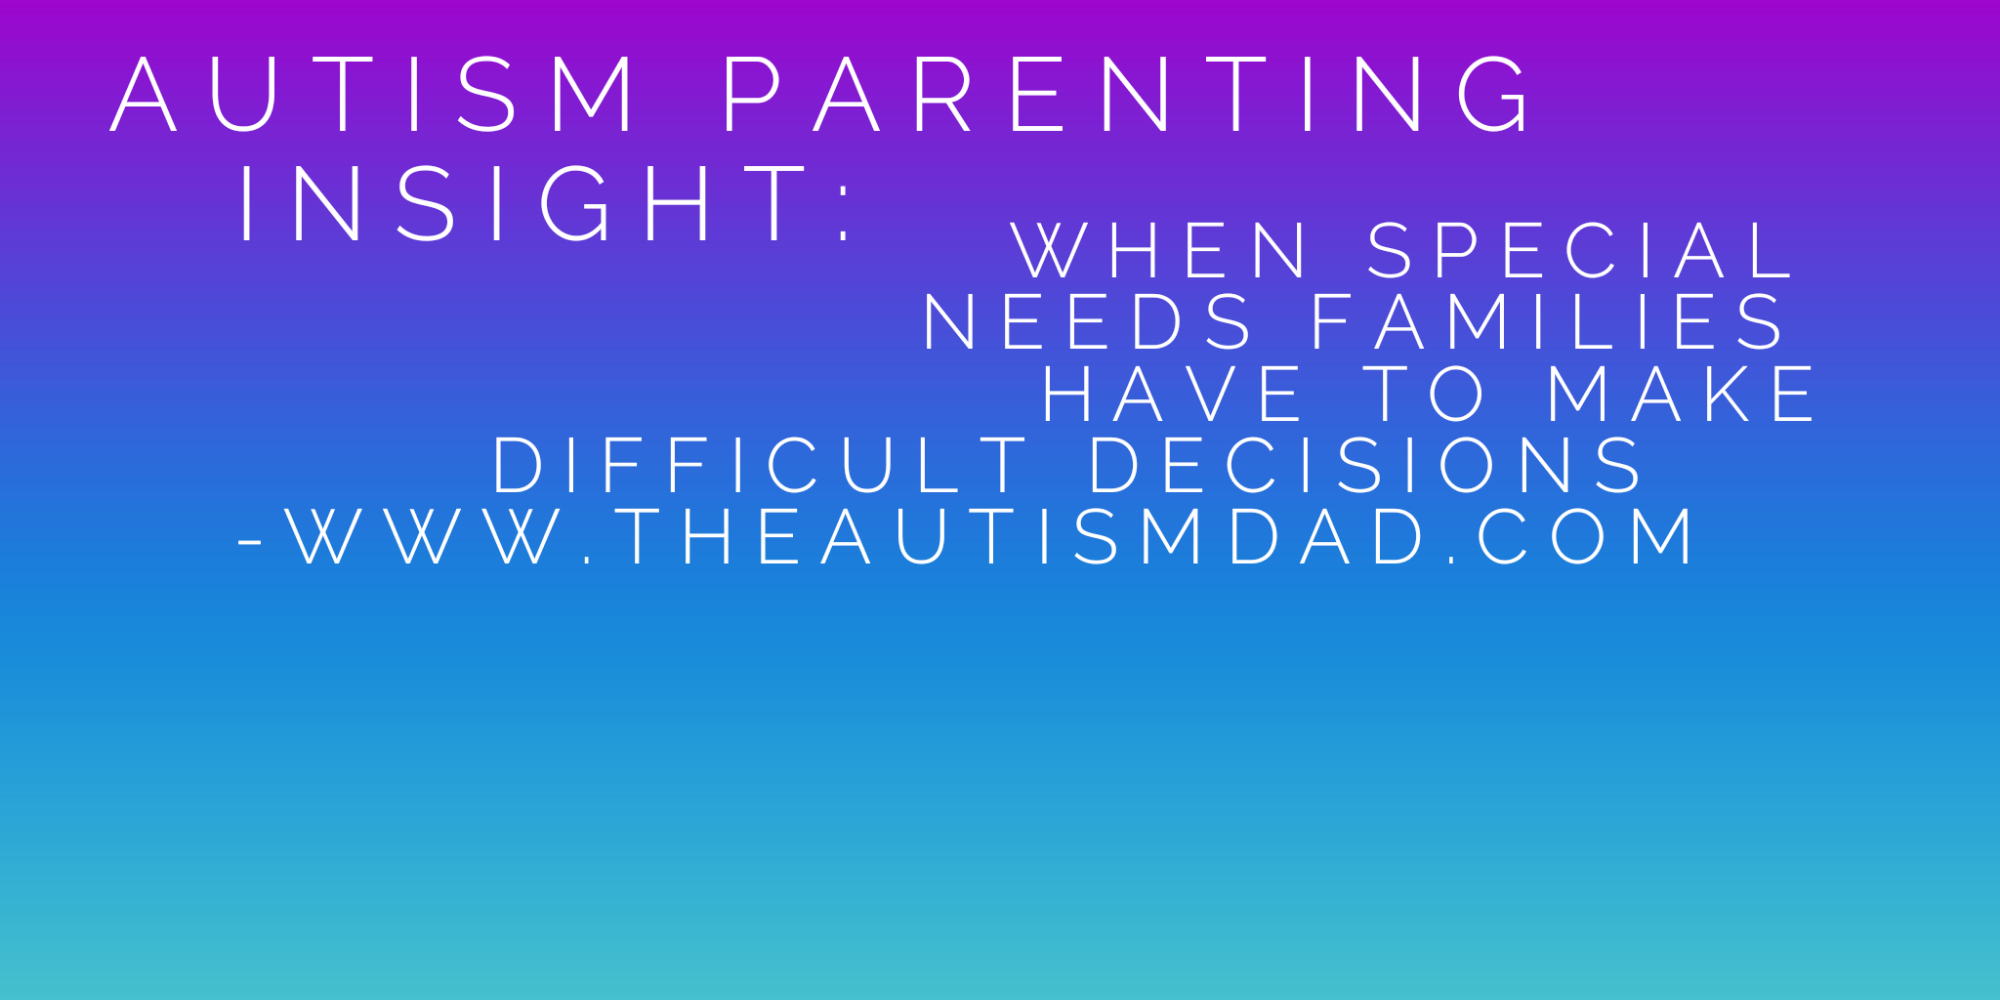 #Autism Parenting Insight – When #SpecialNeeds families have to make difficult decisions